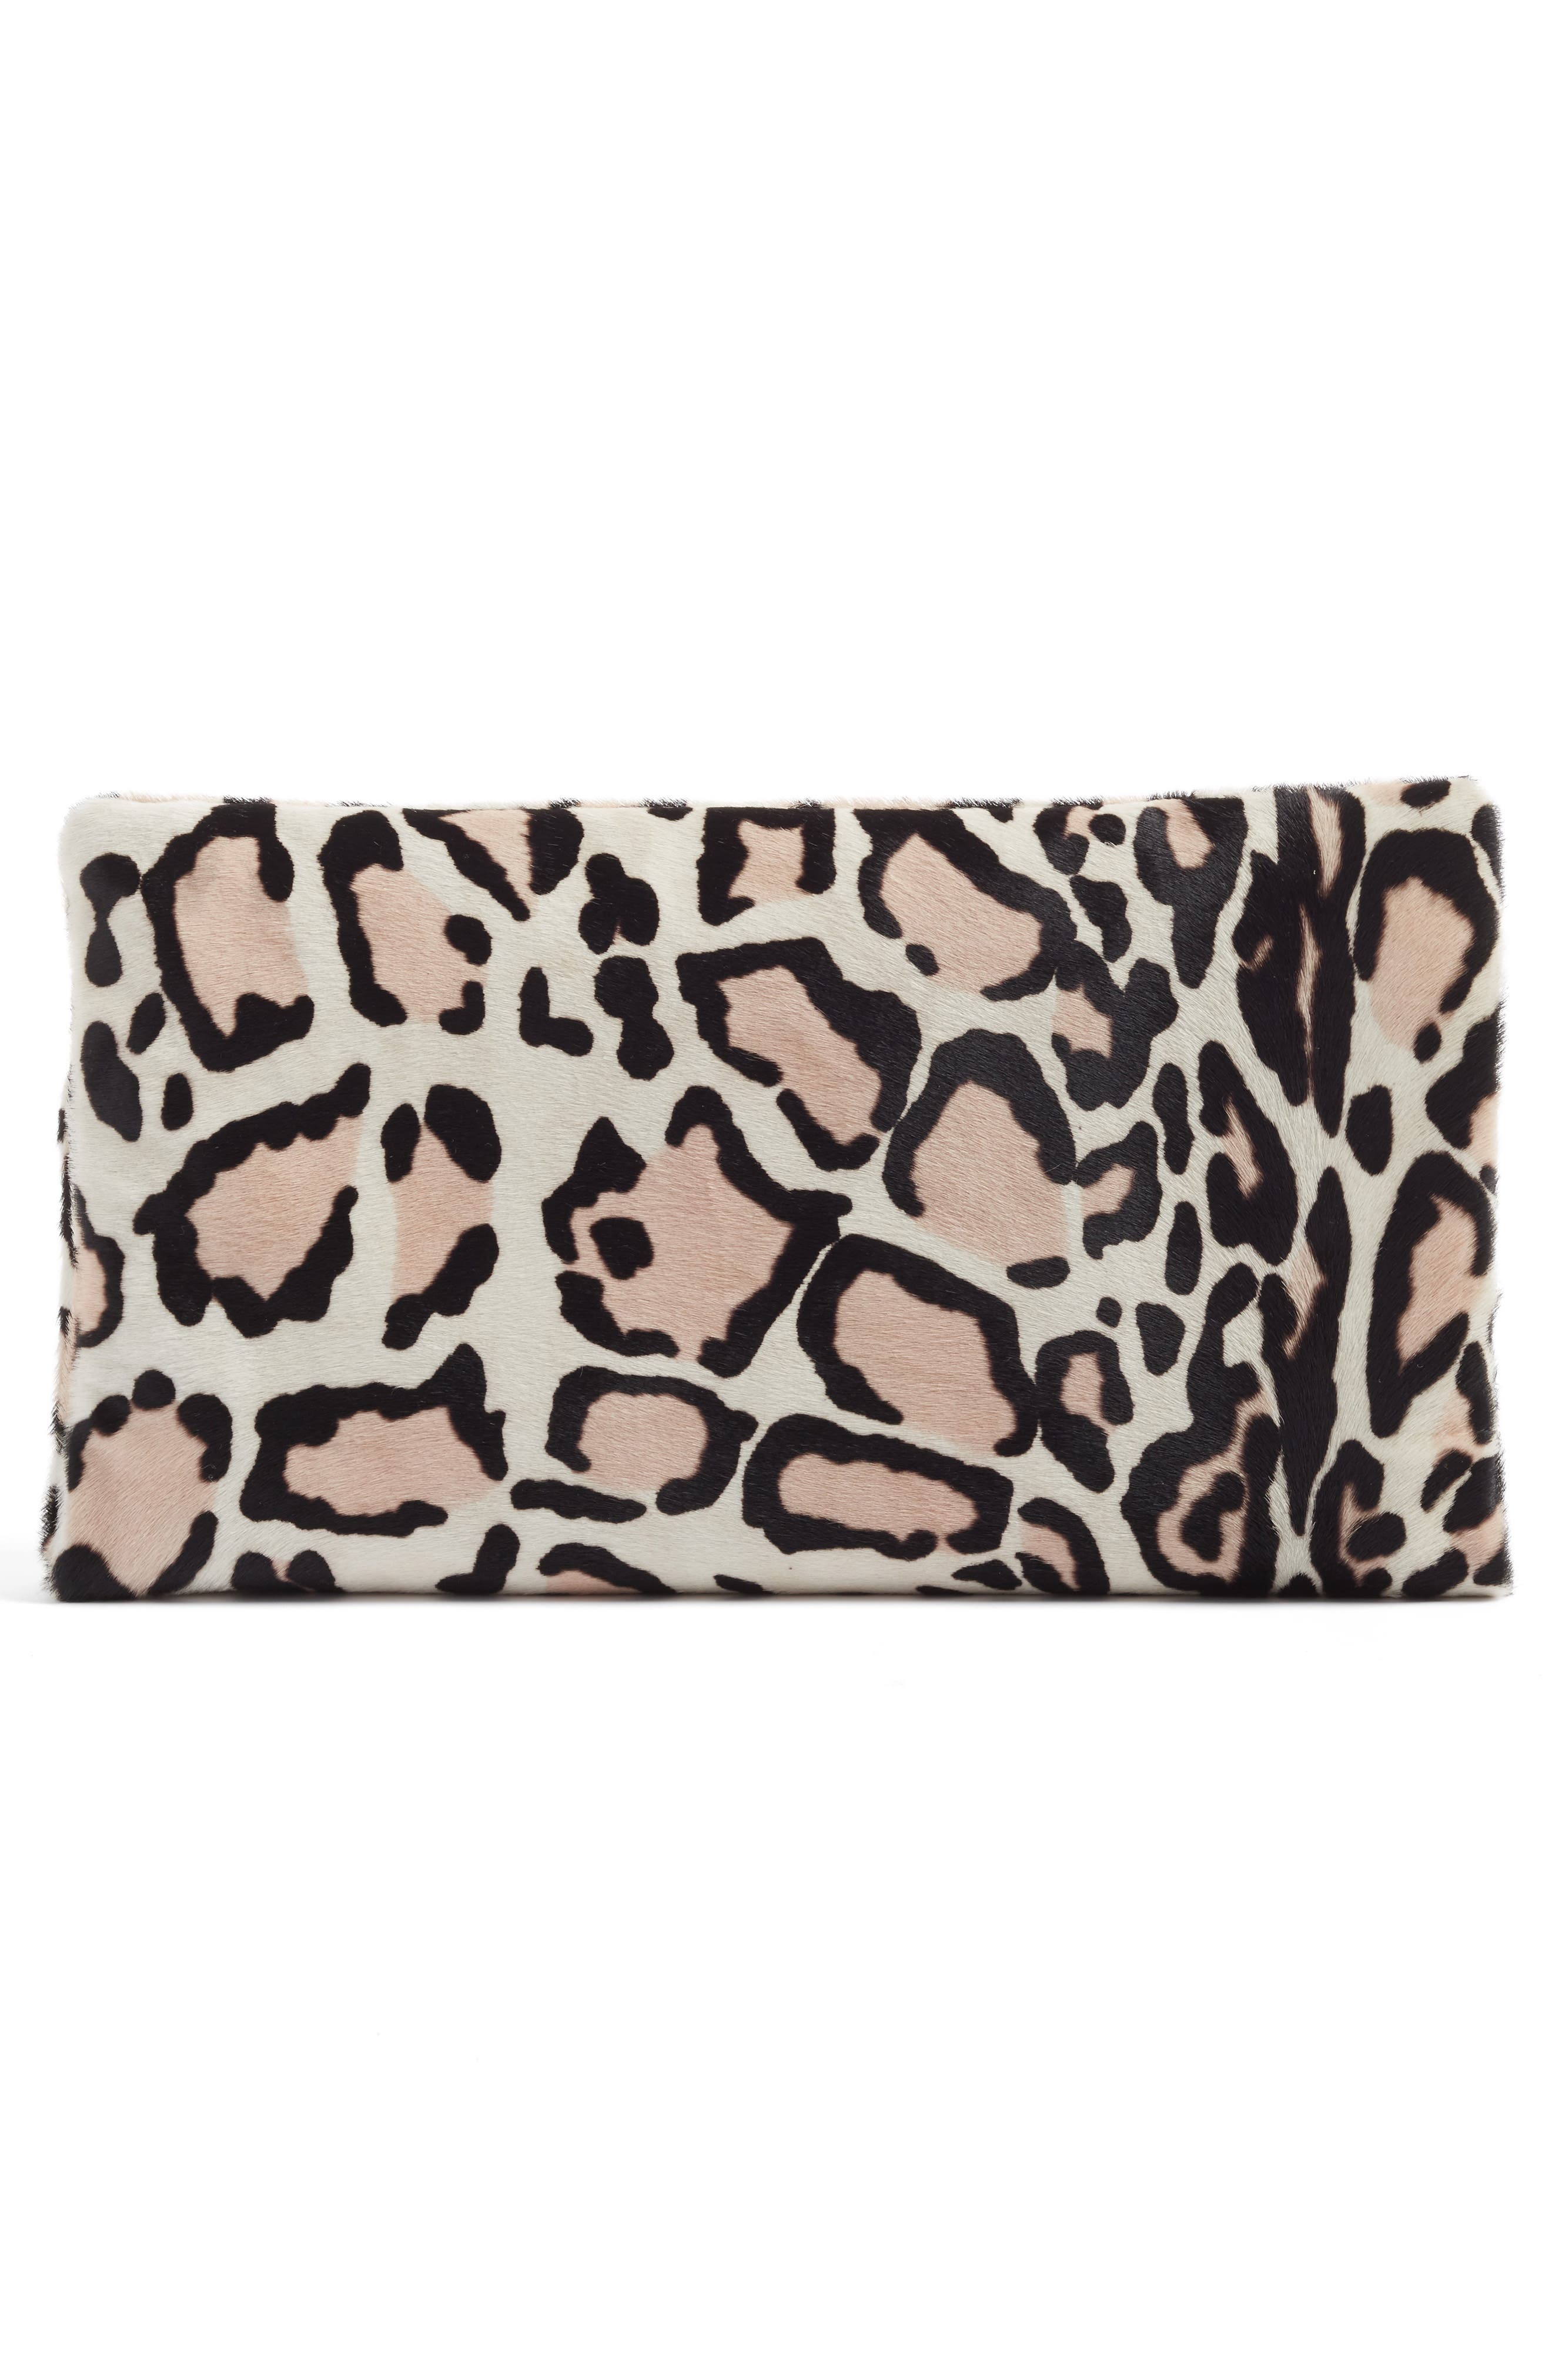 CLARE V., Genuine Calf Hair Foldover Clutch, Alternate thumbnail 2, color, 900